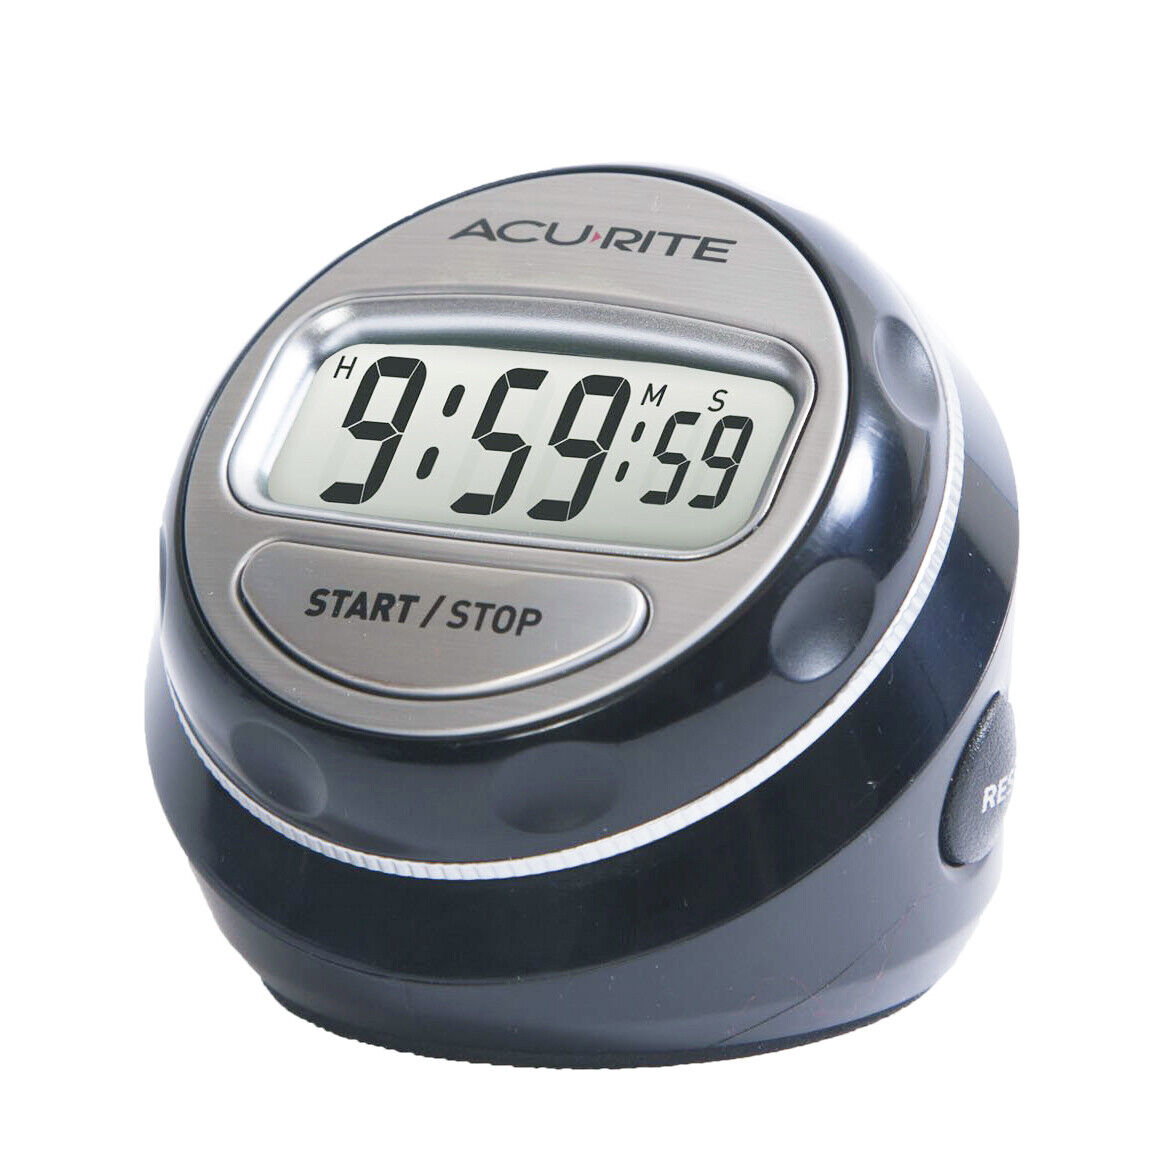 AcuRite 00285E Digital Twist Timer, Multicolor, No Tax, Free